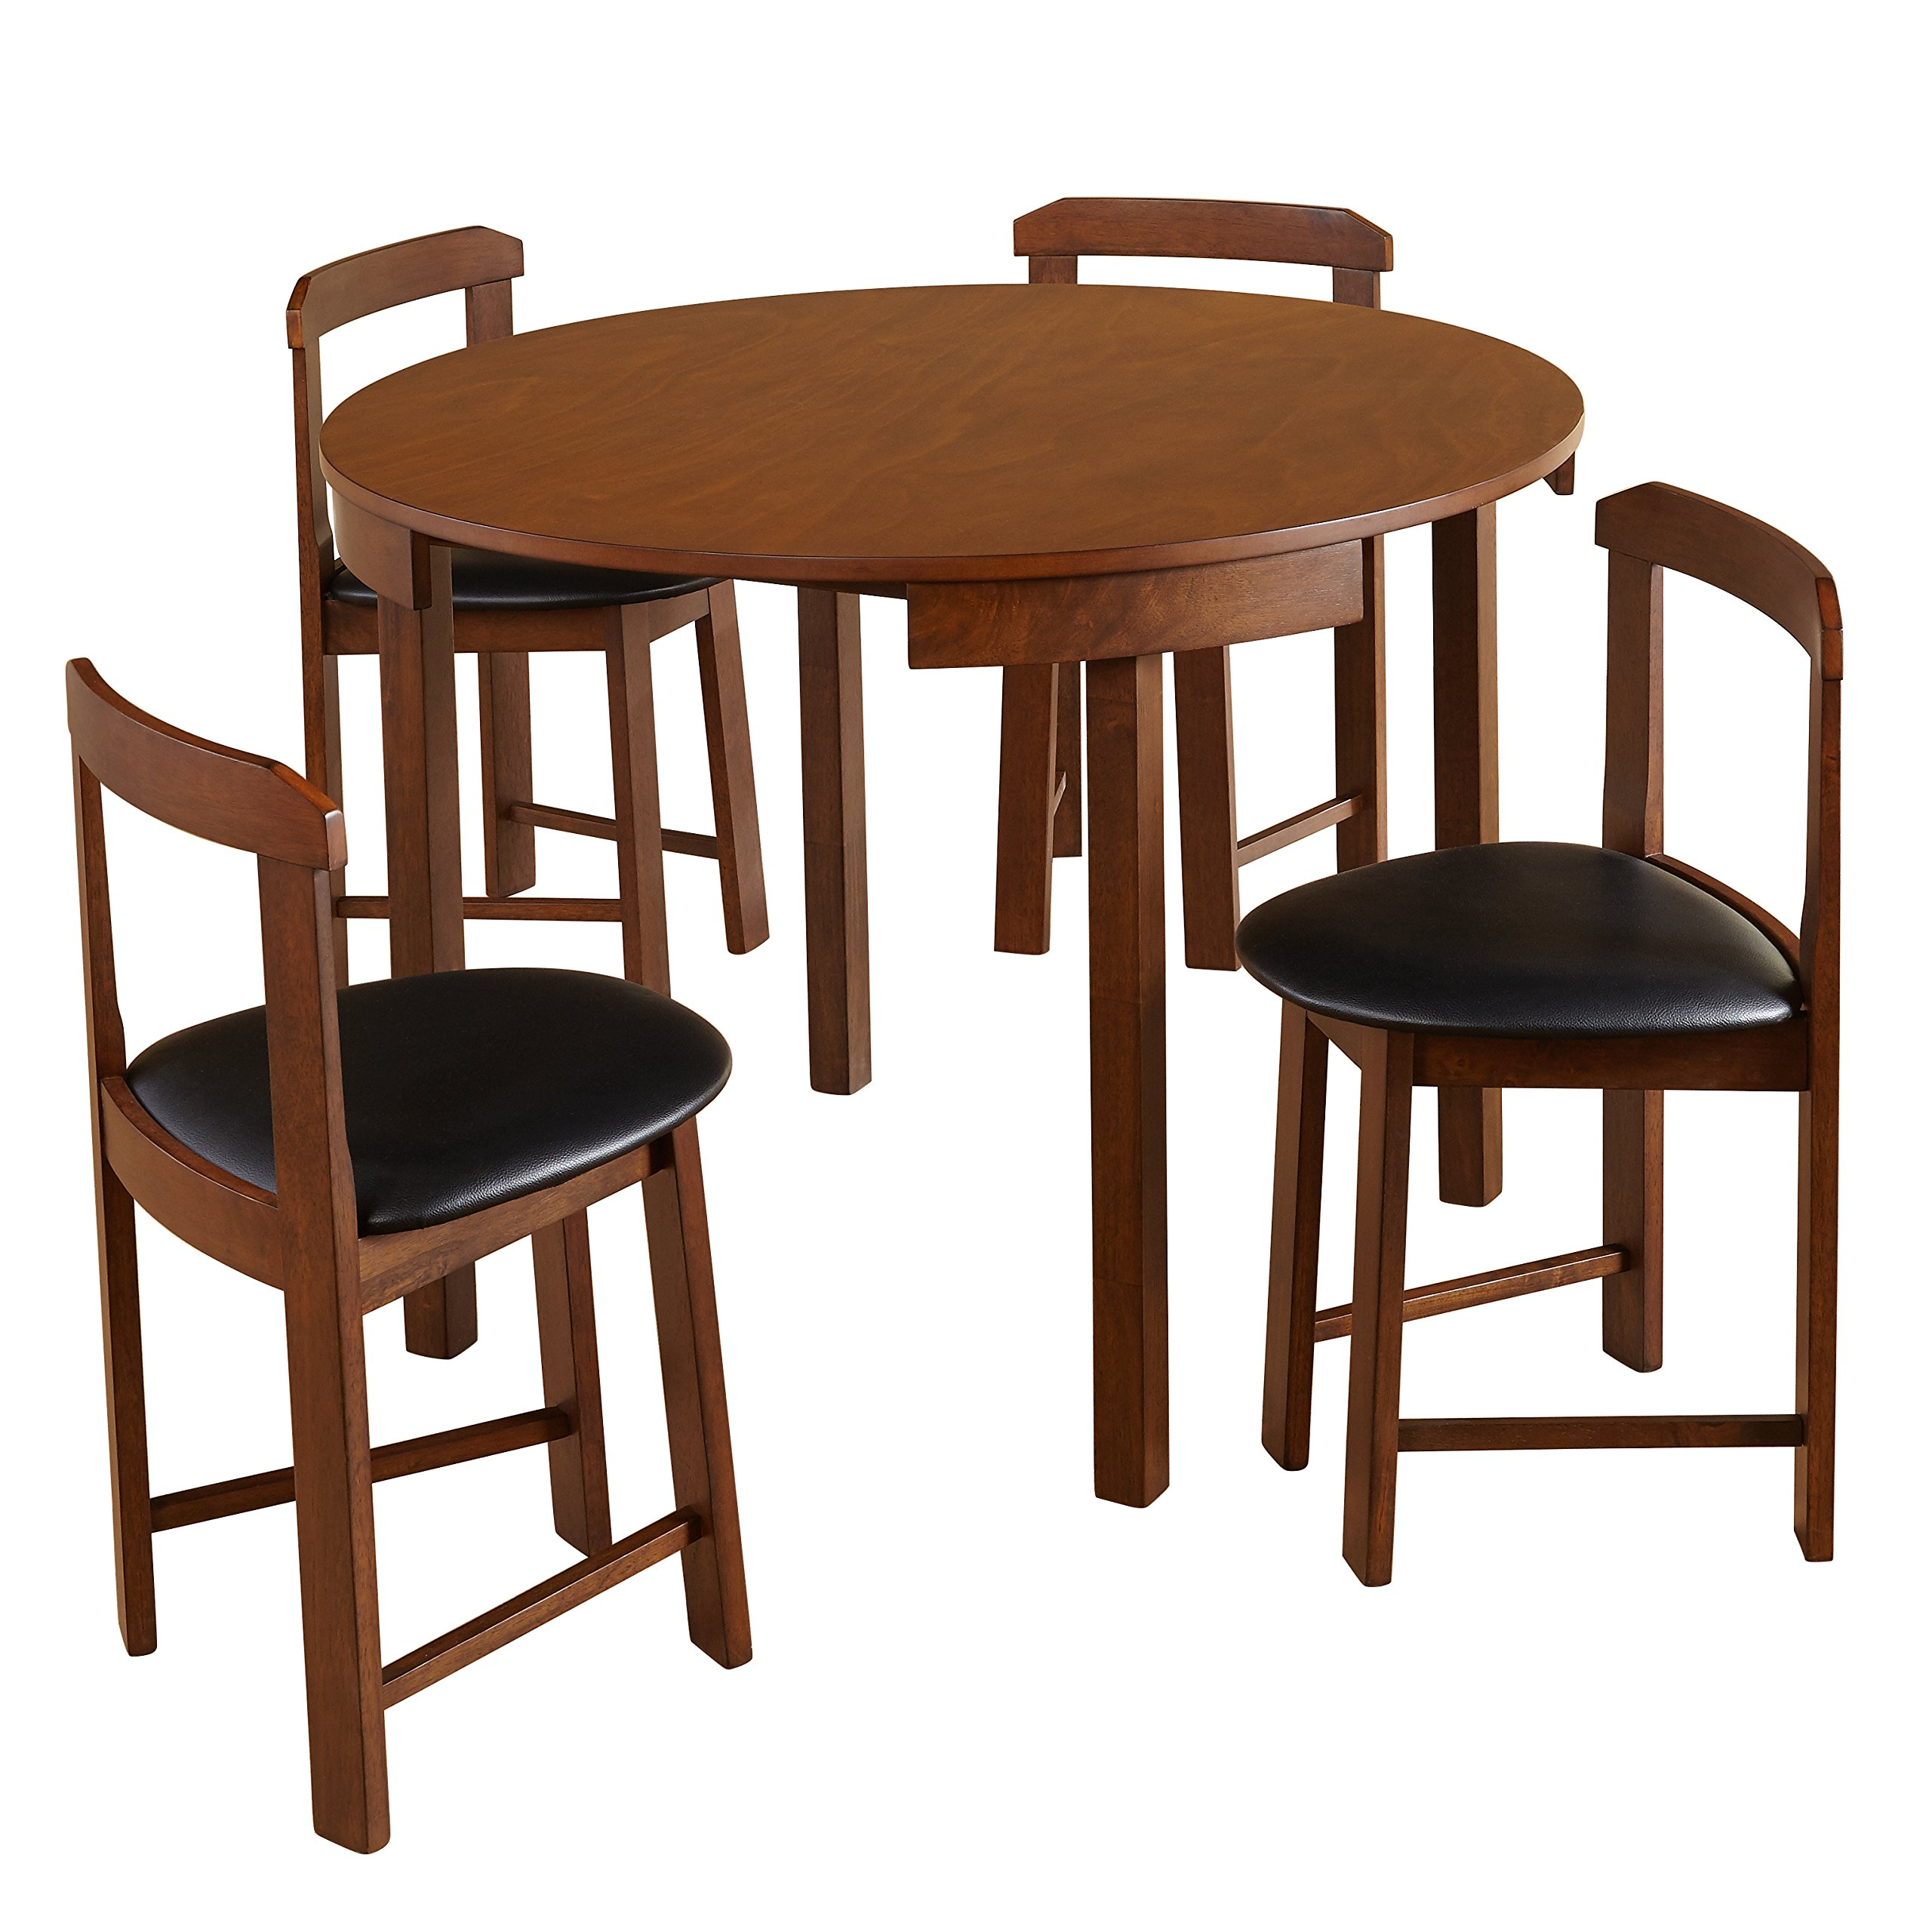 Target Marketing Systems Zuma Collection Compact Set 9 Piece Round Nesting  Dining Table & Chairs, Walnut